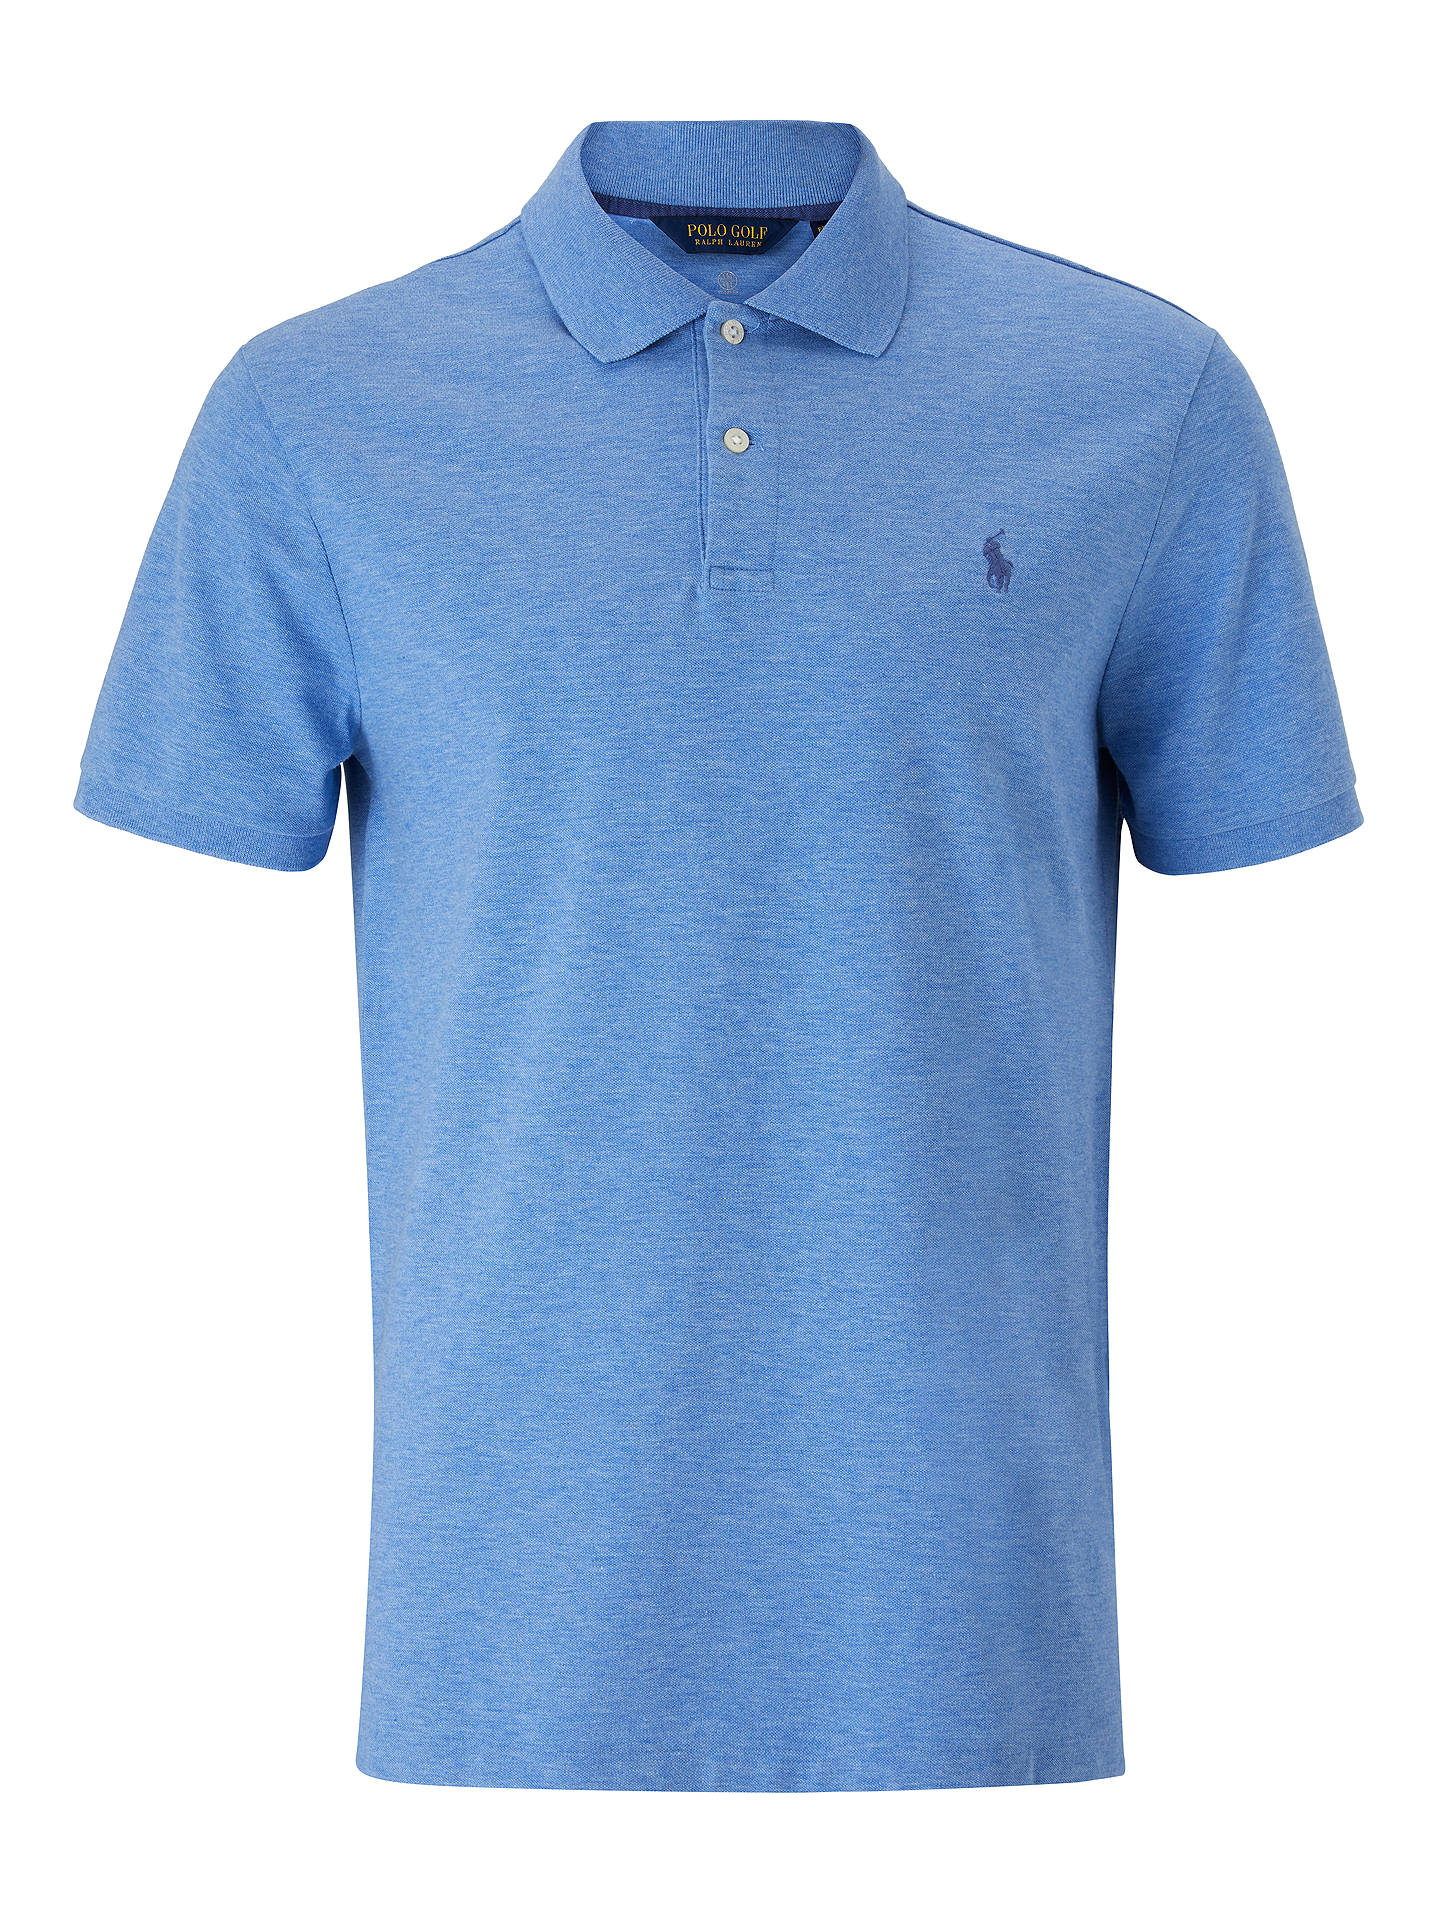 BuyPolo Ralph Lauren Slim Fit Stretch Mesh Polo Shirt, Soft Royal Heather, S Online at johnlewis.com